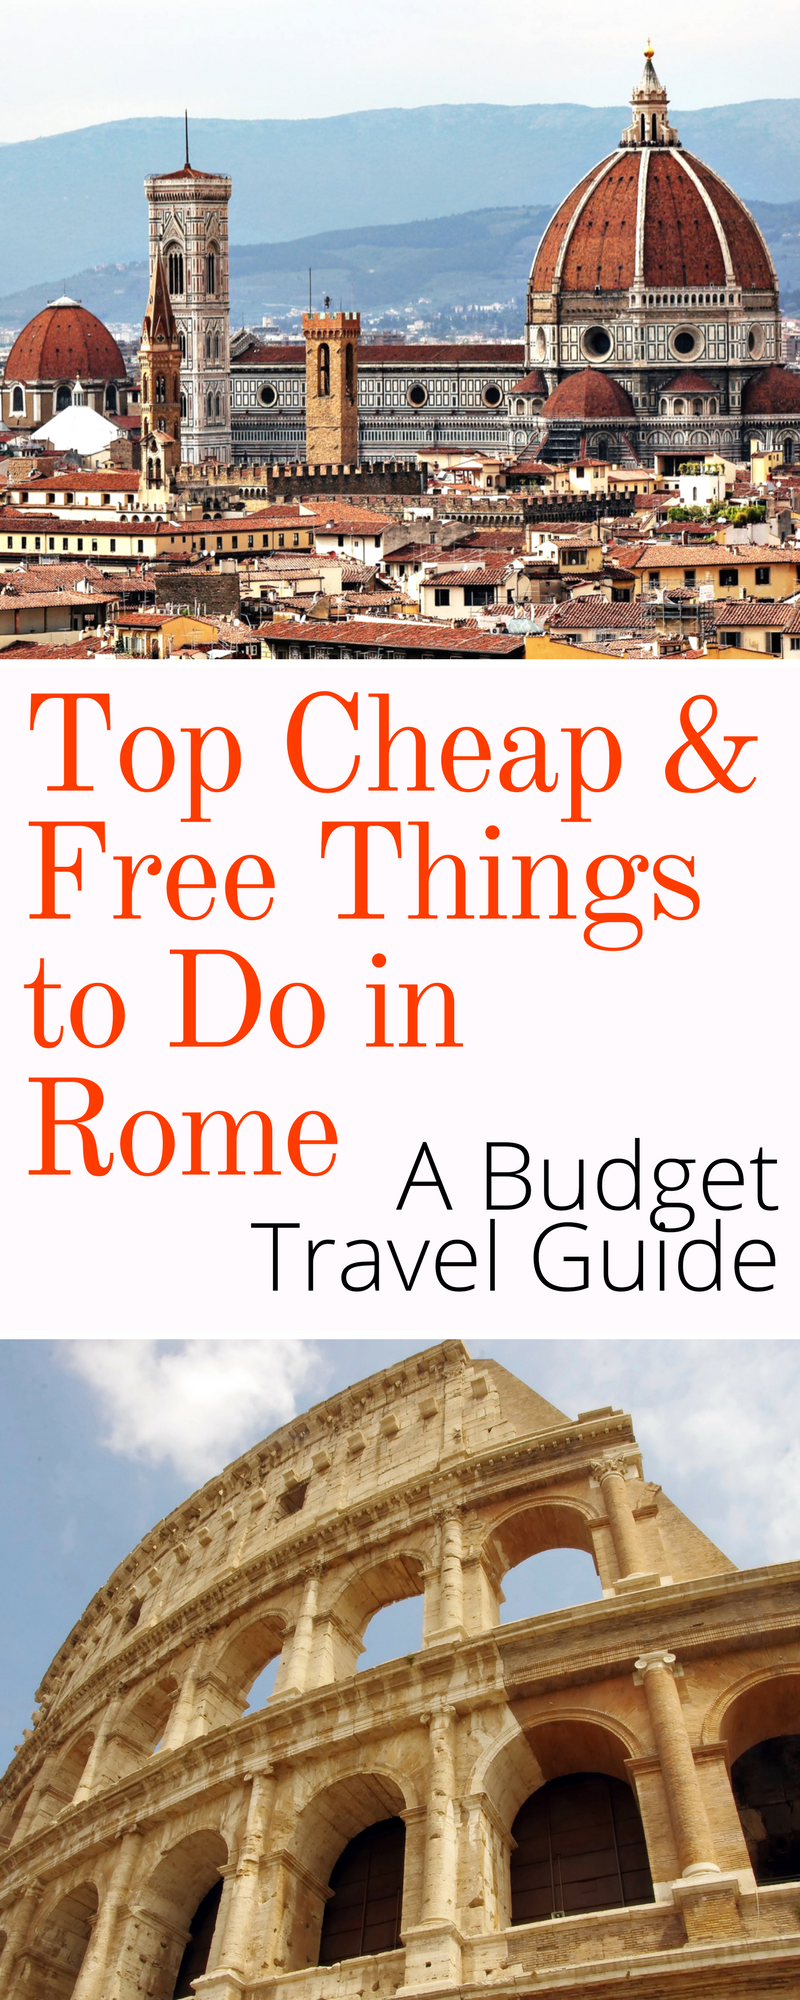 Italian Tourist: 10 Cheap Or Free Things To Do In Rome